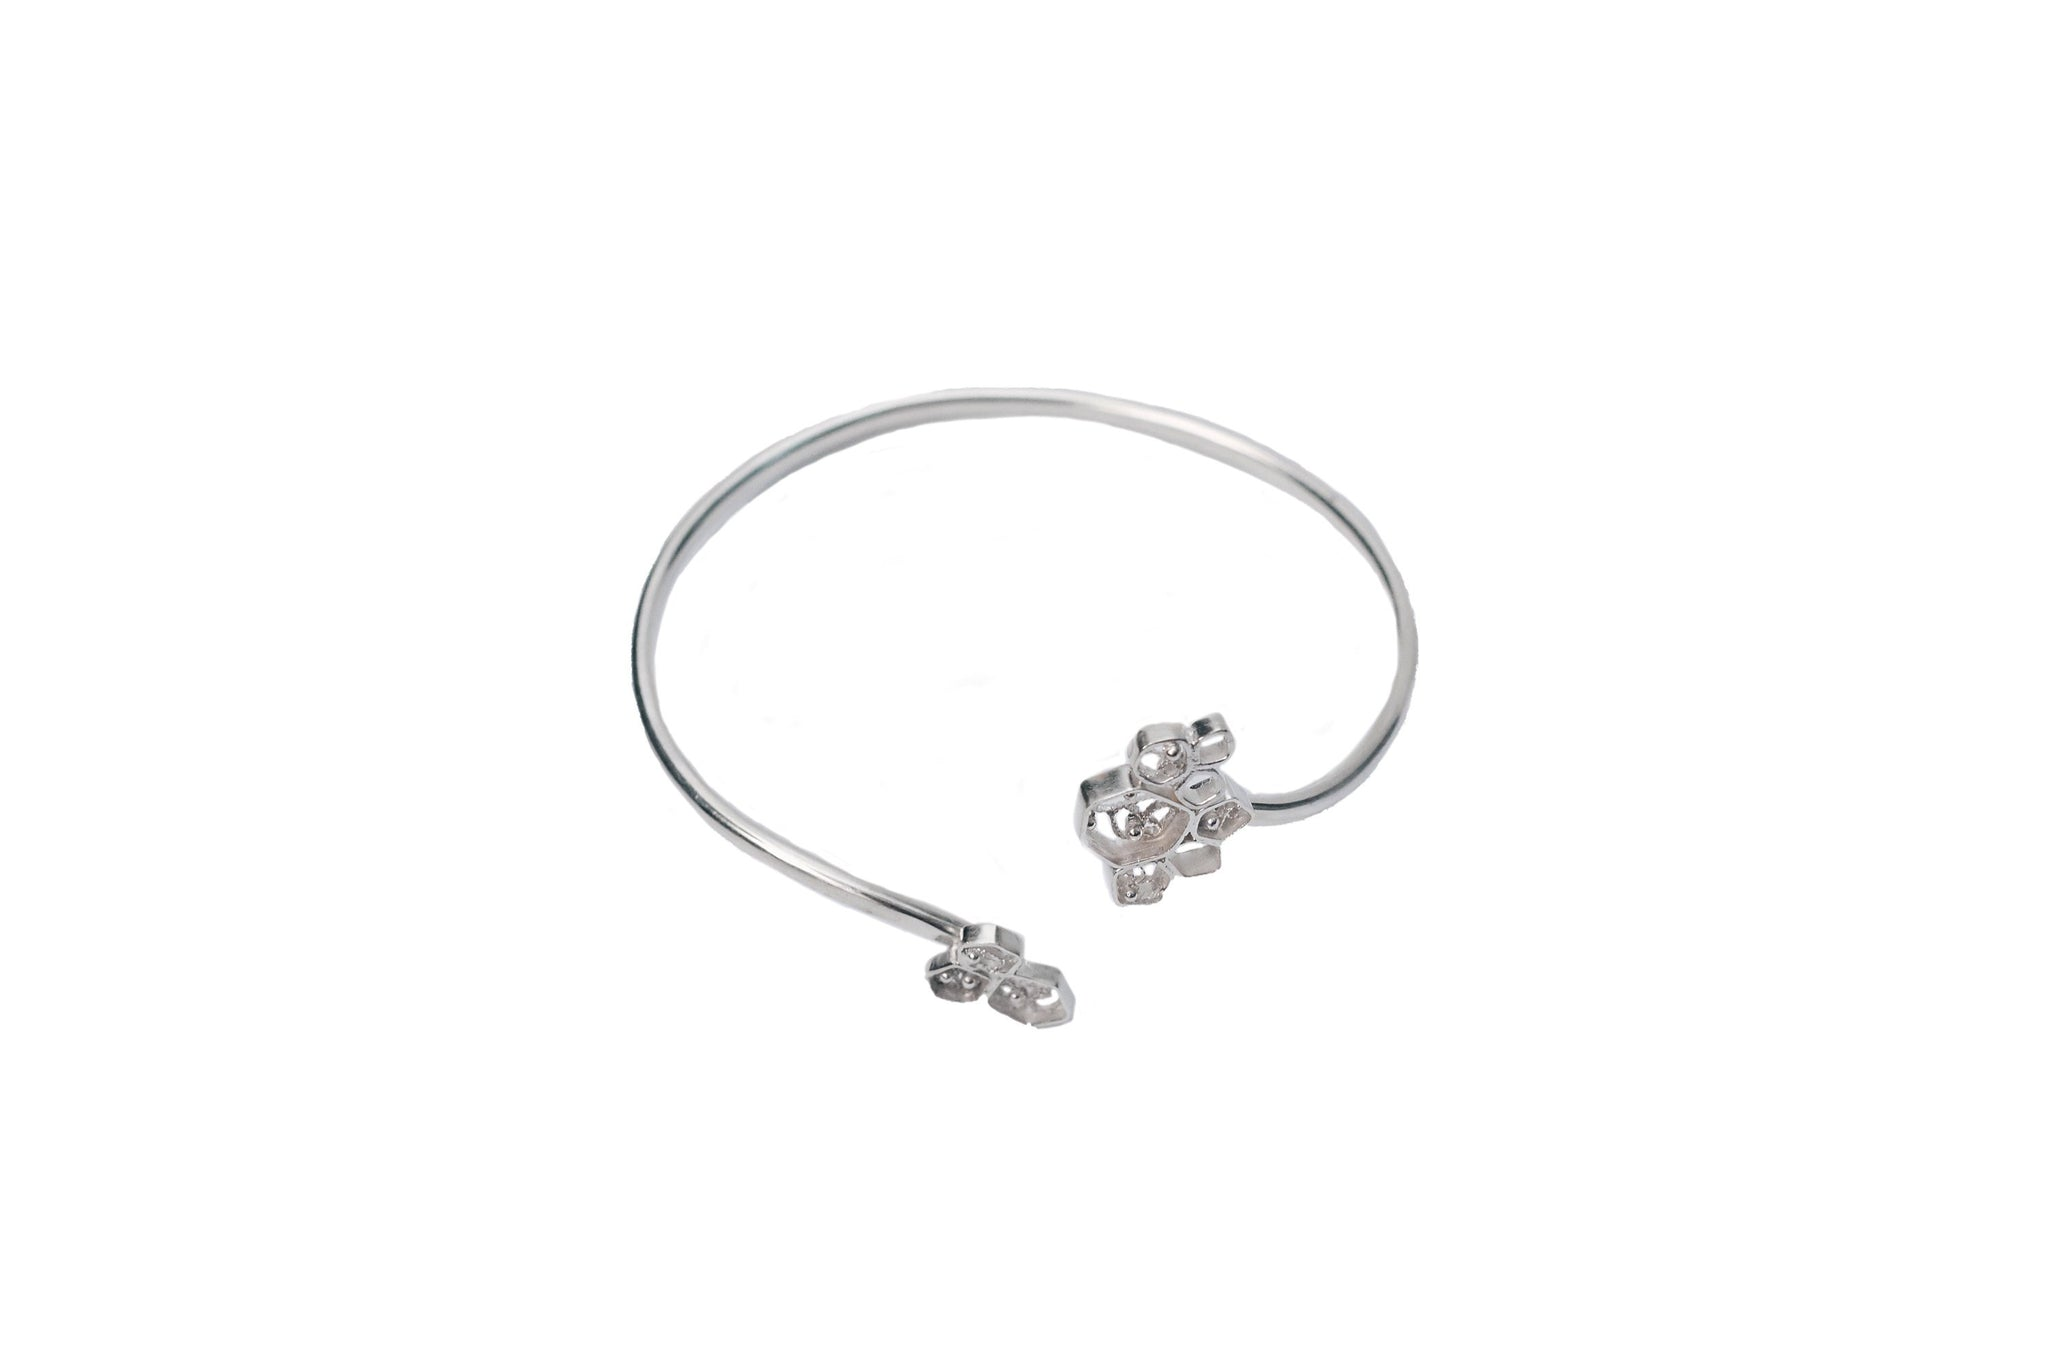 Cells Silver Bracelet, Valentina Caprini, Found By Lesetta